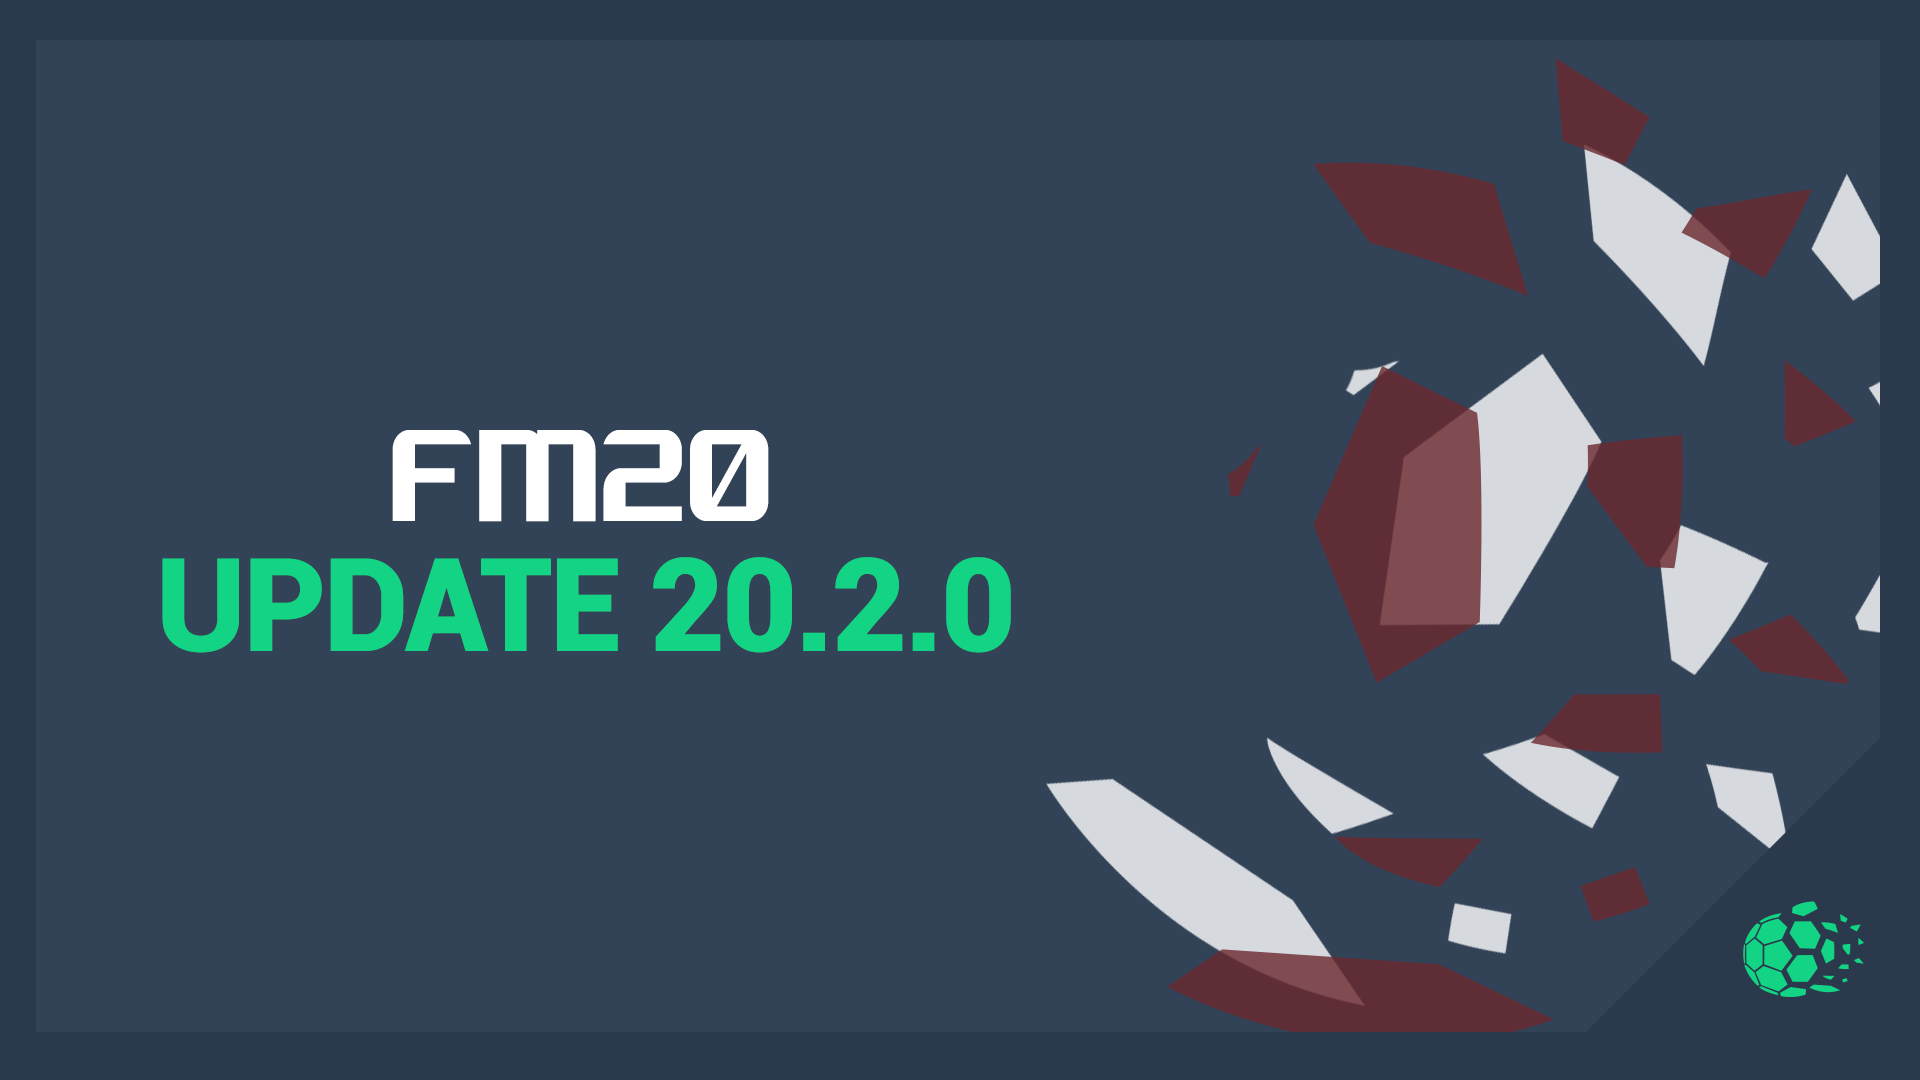 """FM20 Football Manager 2020 Update 20.2.0 Out Now"" feature image"